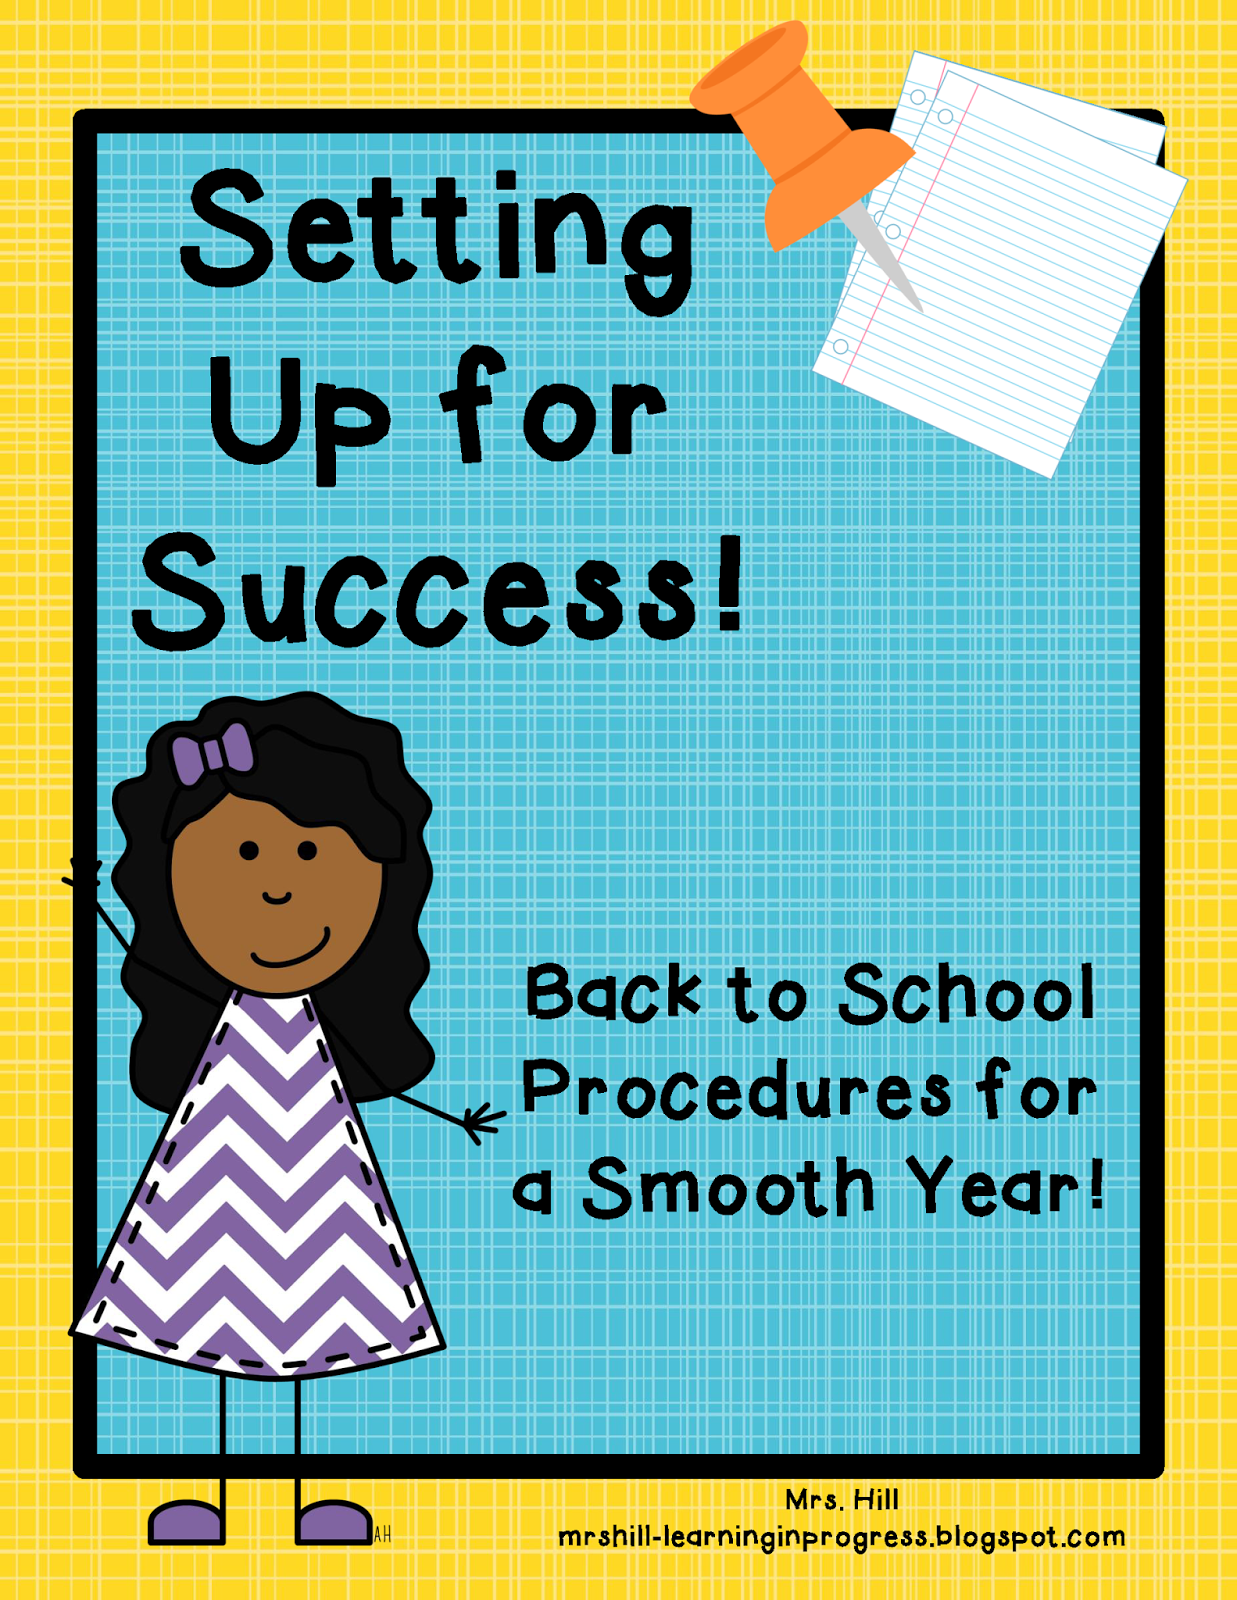 http://www.teacherspayteachers.com/Product/Setting-Up-for-Success-Back-to-School-Procedures-793108